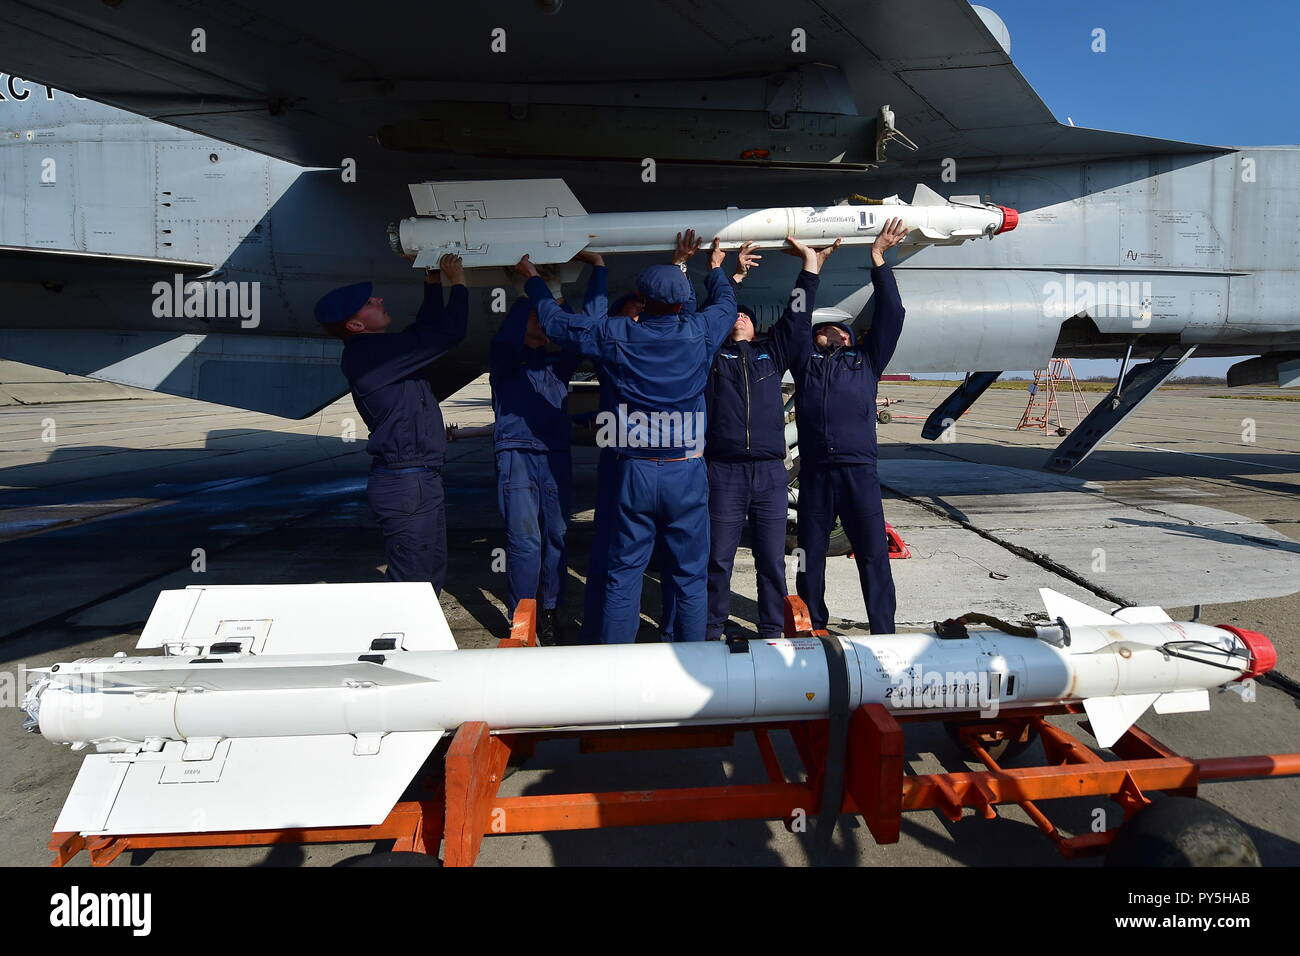 Primorye Territory, Russia. 25th Oct, 2018. PRIMORYE TERRITORY, RUSSIA - OCTOBER 25, 2018: Placing a Vympel R-73 air-to-air missile on a Mikoyan MiG-31BM interceptor aircraft before a training flight at the Tsentralnaya Uglovaya airfield. Yuri Smityuk/TASS Credit: ITAR-TASS News Agency/Alamy Live News Stock Photo